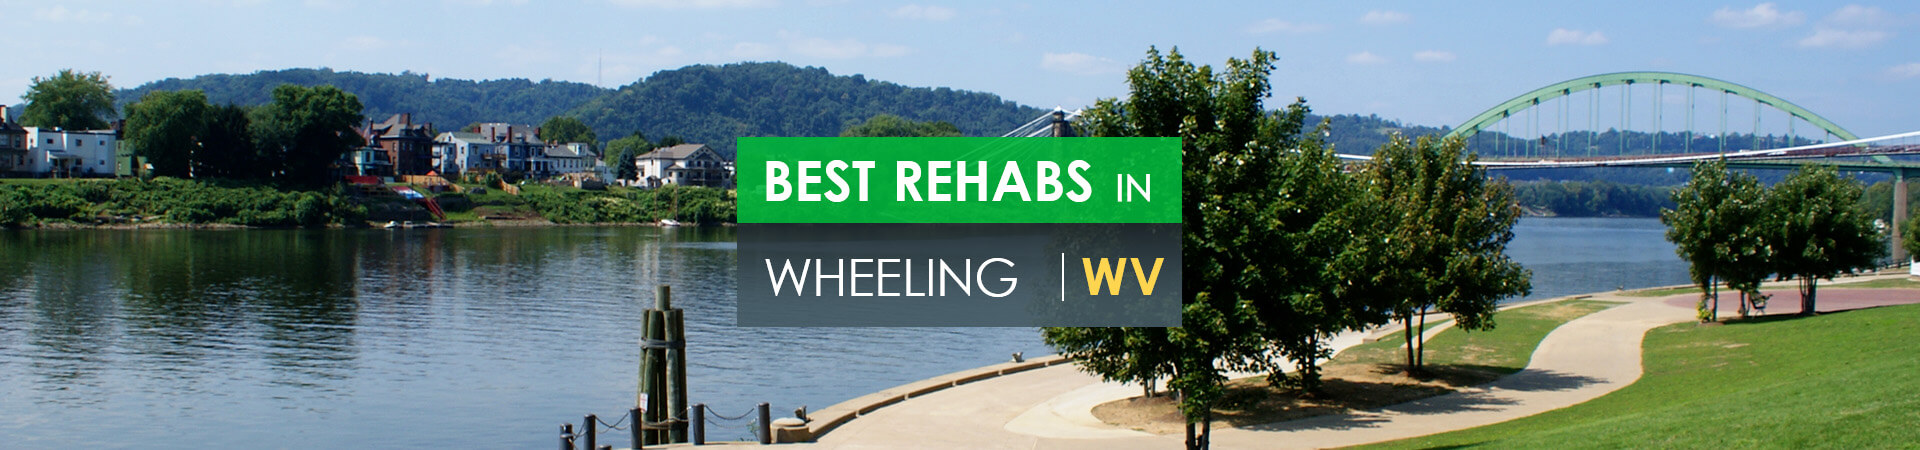 Best rehabs in Wheeling, WV